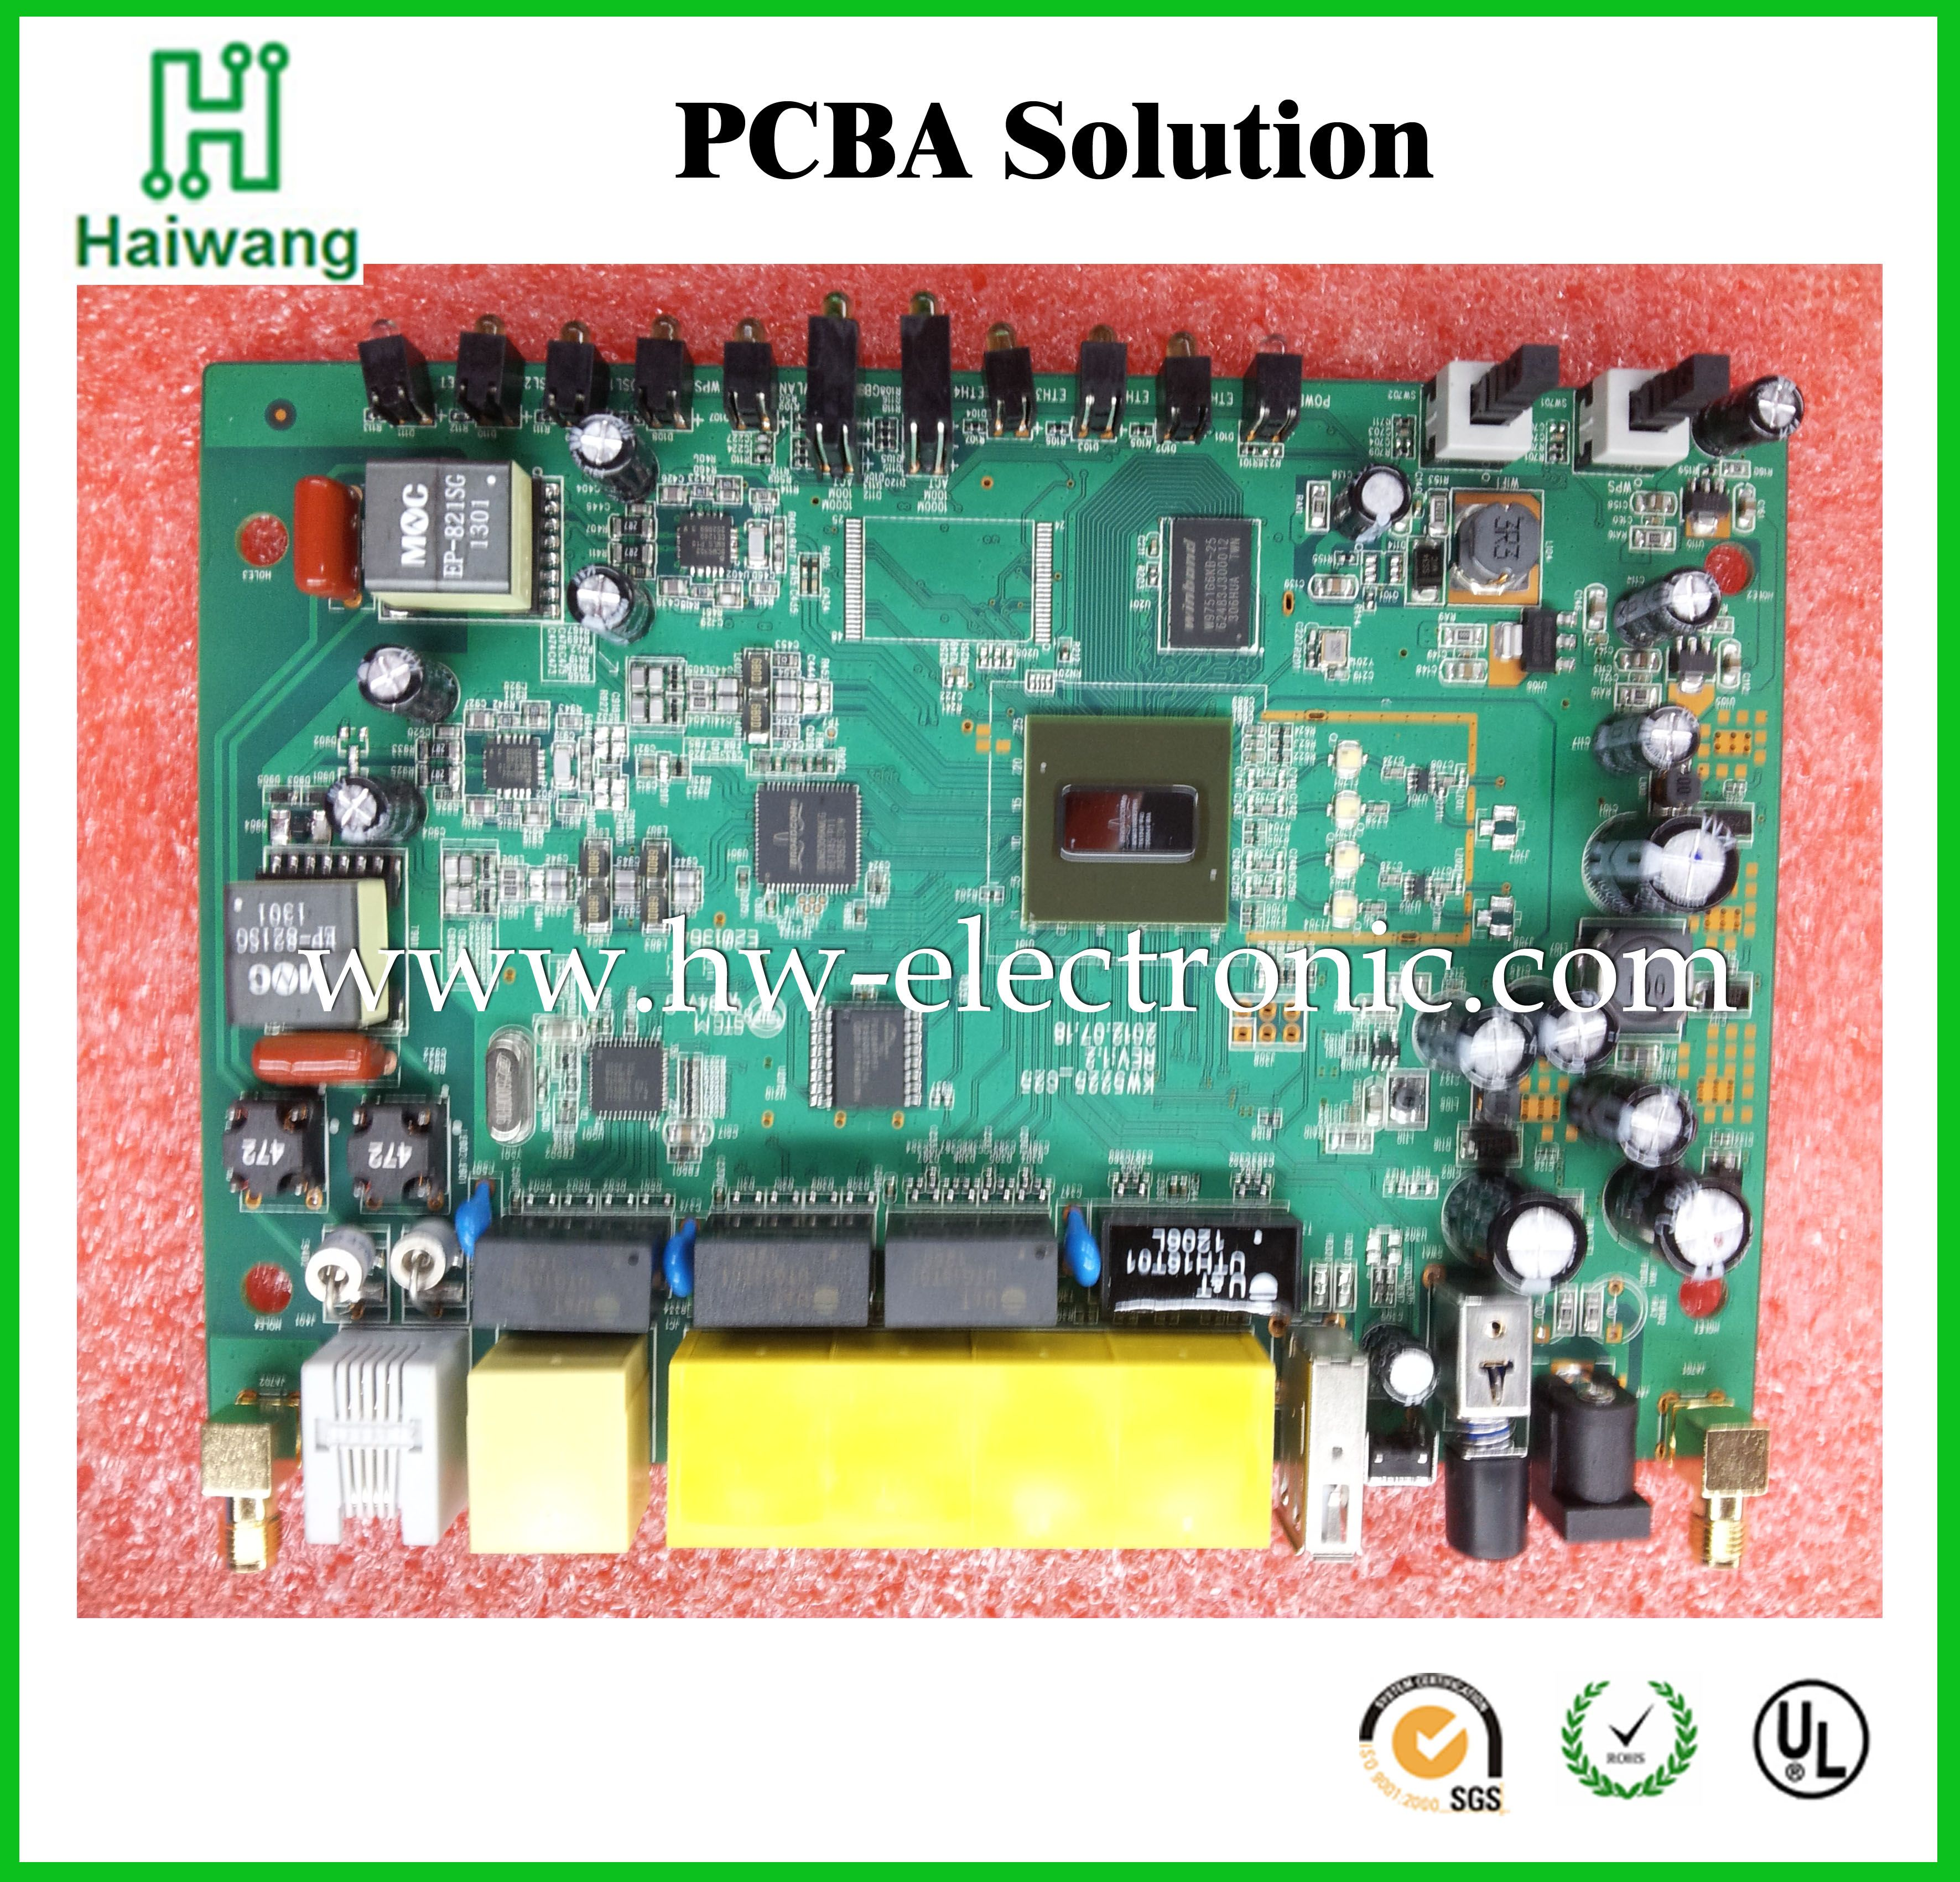 Pcba For Tel Pcb Print Circuit Board Prototype Manufacturing Printed Production Smt Electronic Assembly Rapid Boards Prints Planks Art